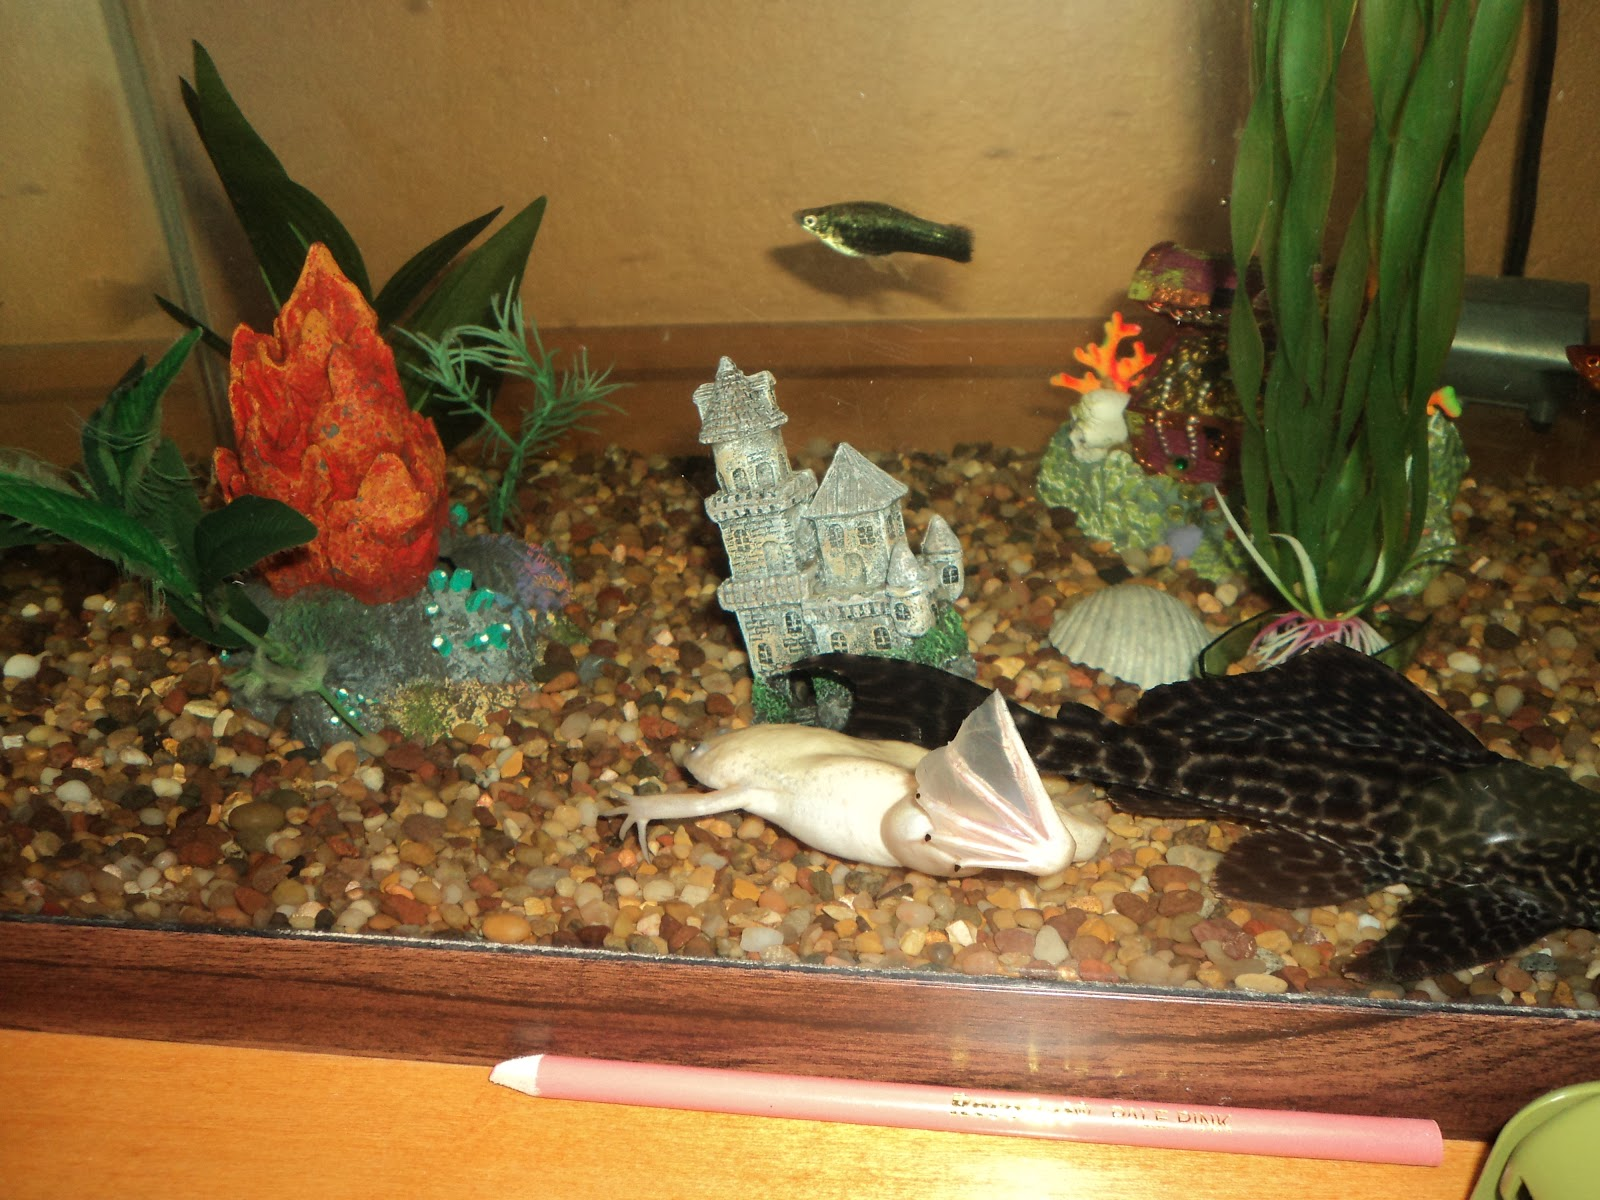 Fish aquarium jobs - In The Elementary Room We Also Have A Plecostomus And A Large African Clawed Frog That Keeps Getting Bigger And Ate All Our Small Fish